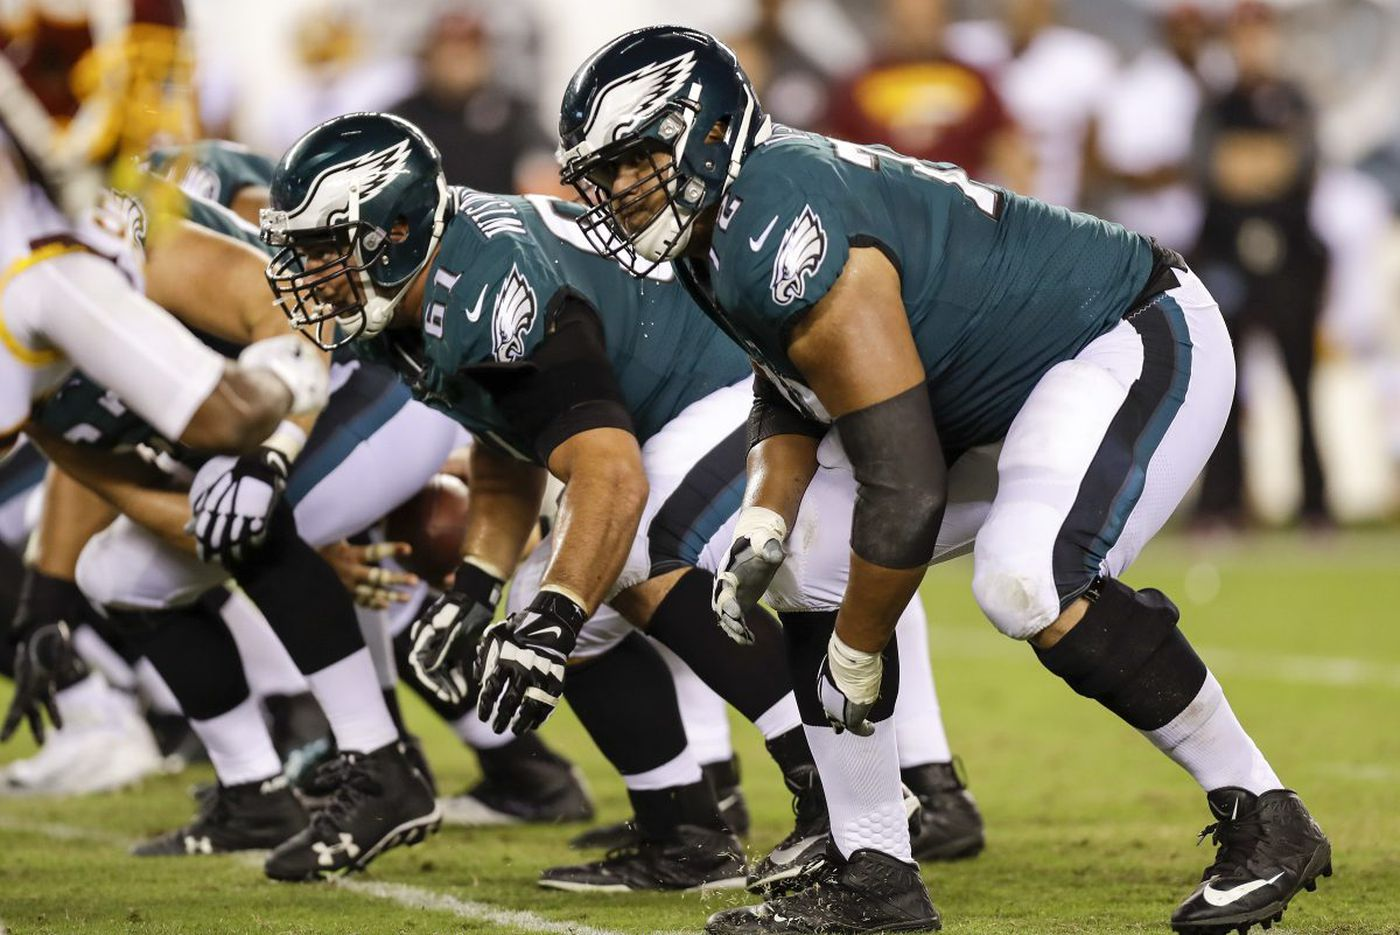 Doug Pederson confirms Lane Johnson to stay put; coach says it's his job to prevent letdown